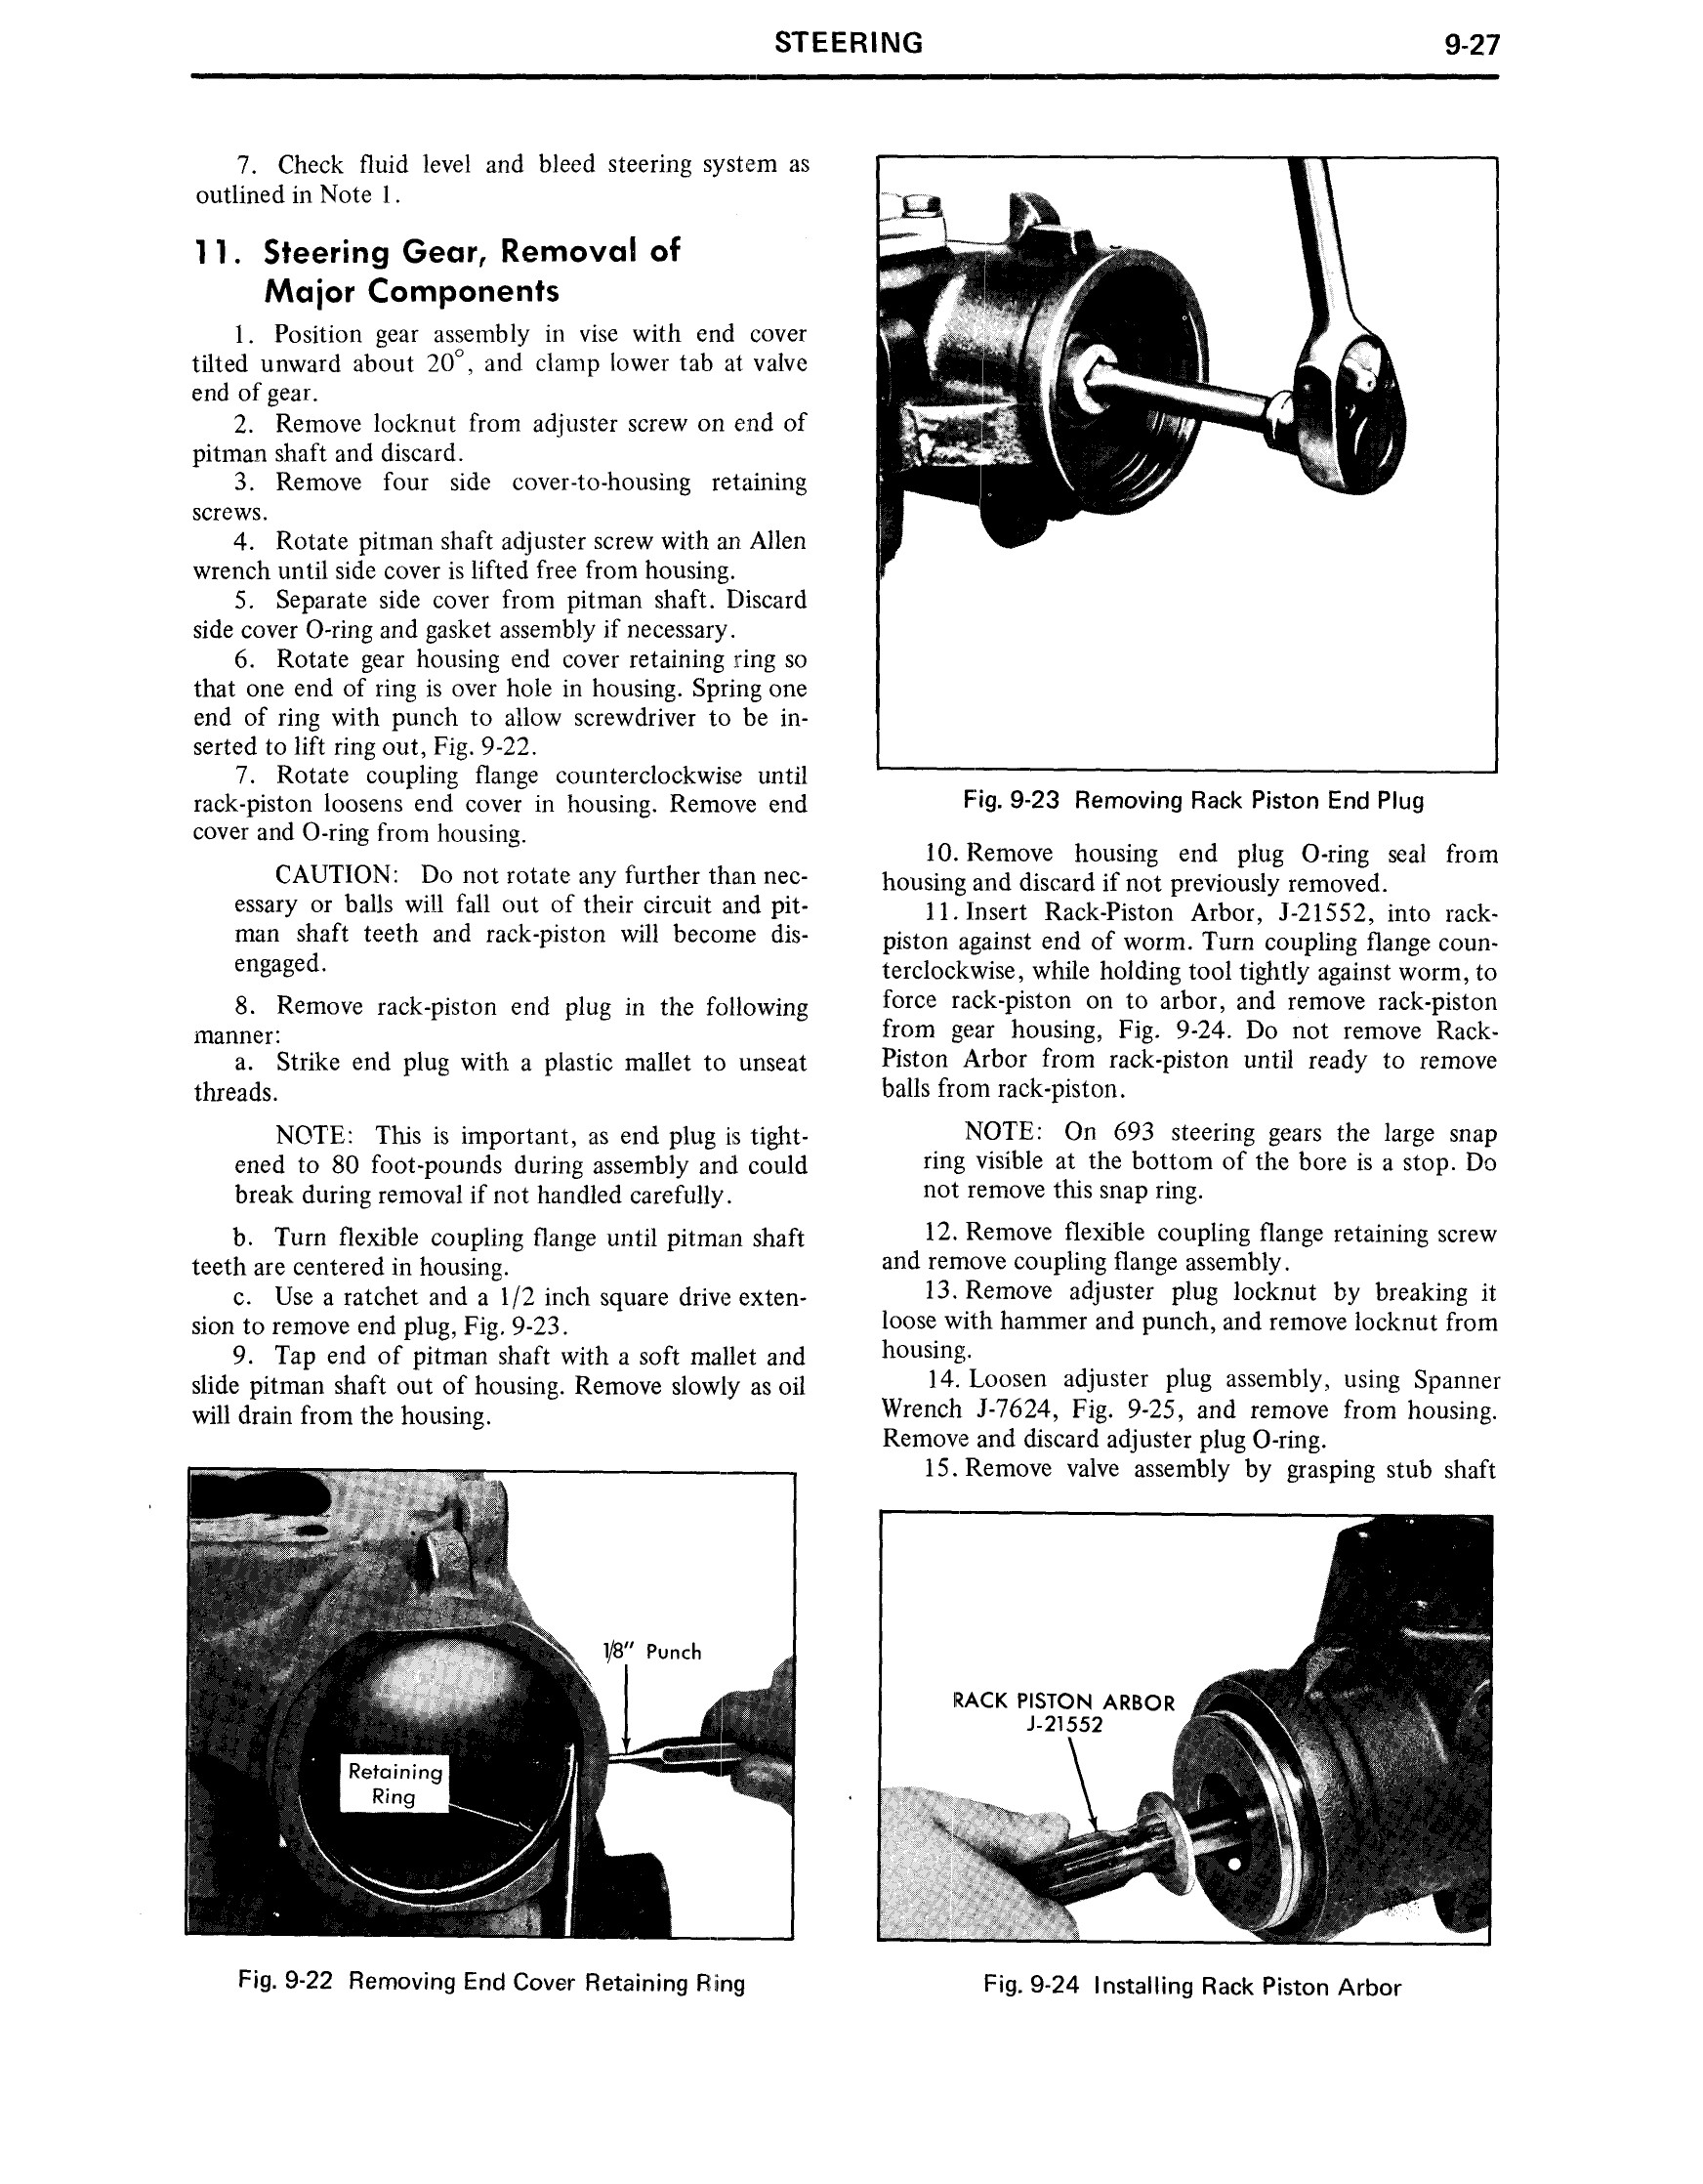 1971 Cadillac Shop Manual- Steering Page 27 of 58